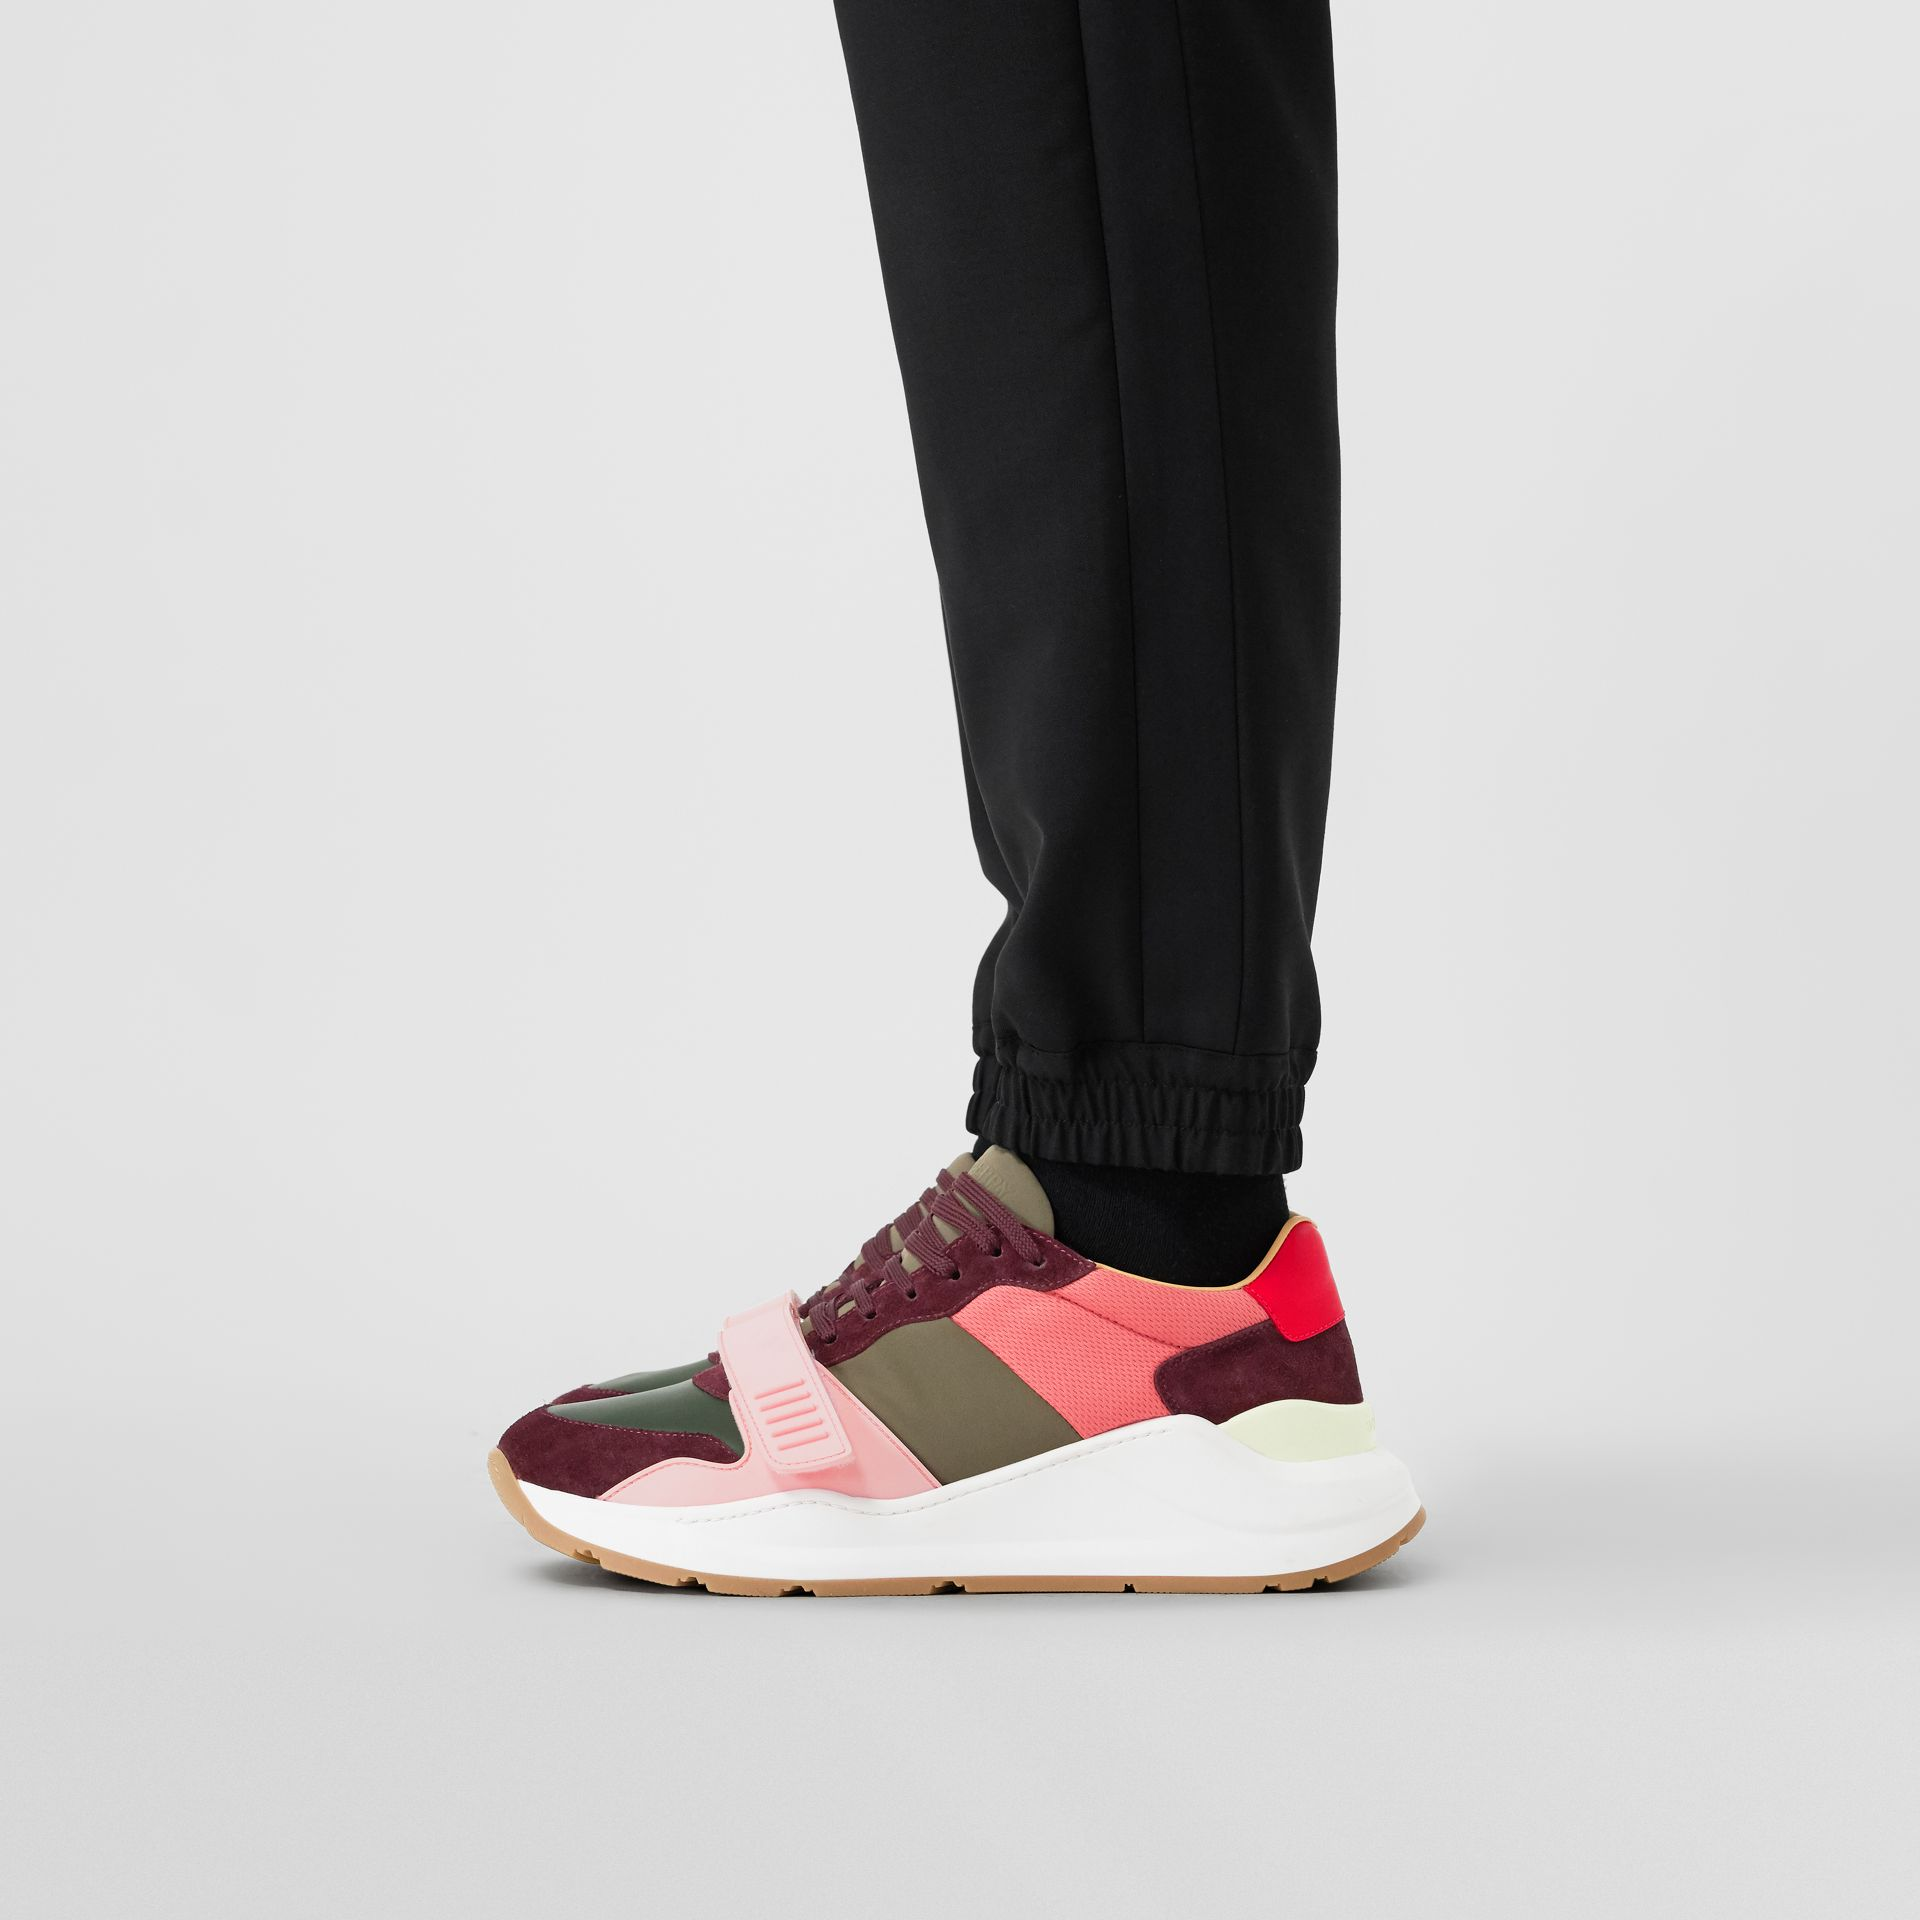 Colour Block Suede and Neoprene Sneakers in Bordeaux/khaki - Men | Burberry United Kingdom - gallery image 2